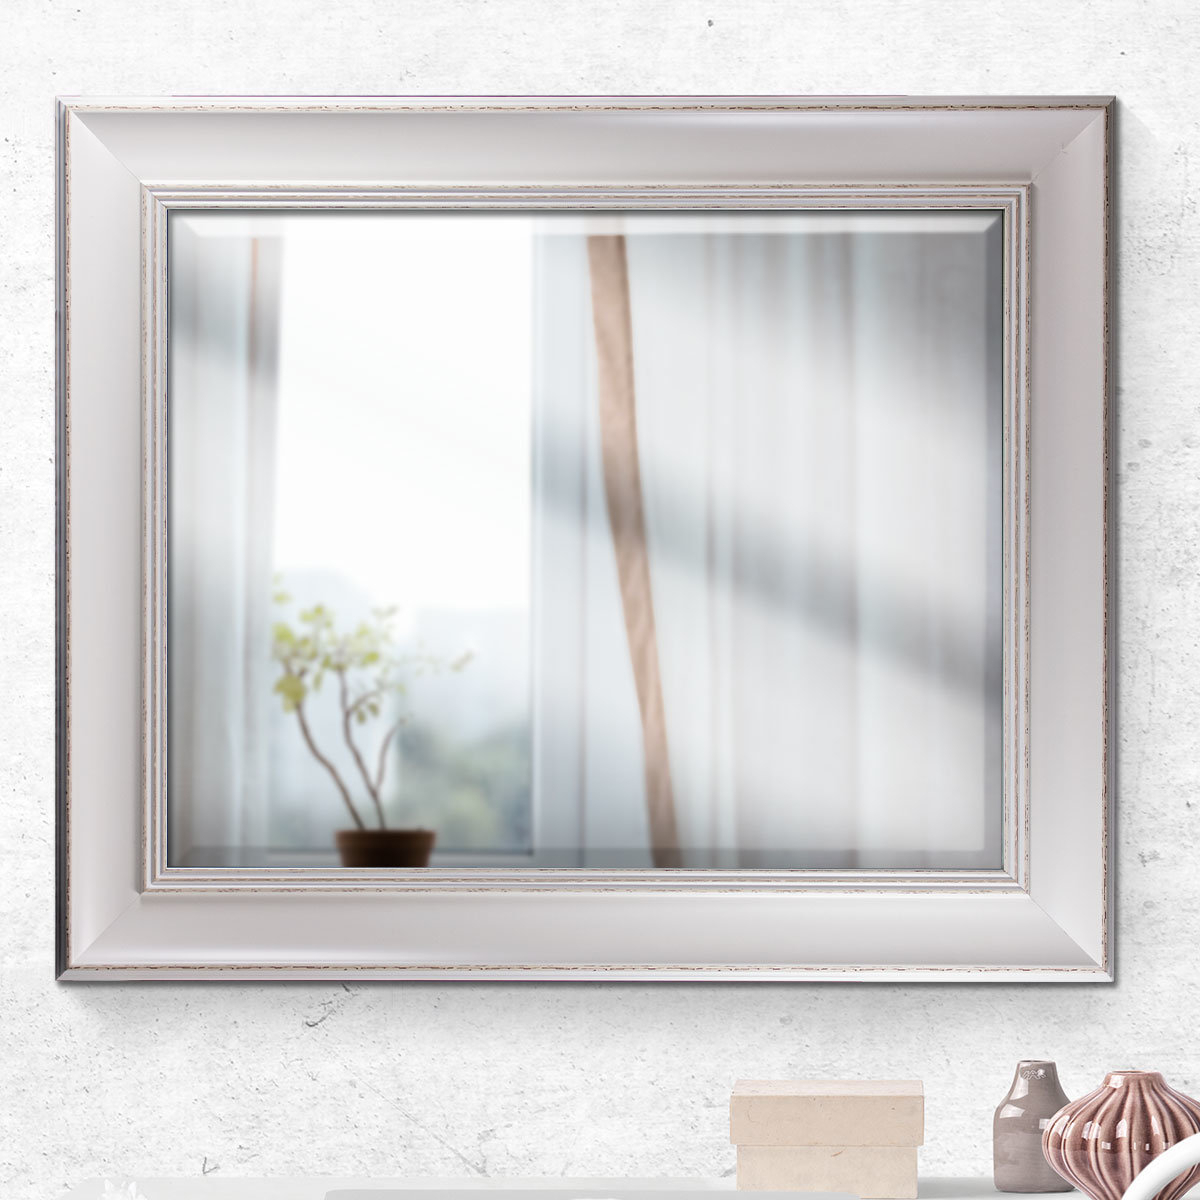 Contemporary Vertical Rectangular Framed Wall Mirror With Regard To Dedrick Decorative Framed Modern And Contemporary Wall Mirrors (Image 4 of 20)